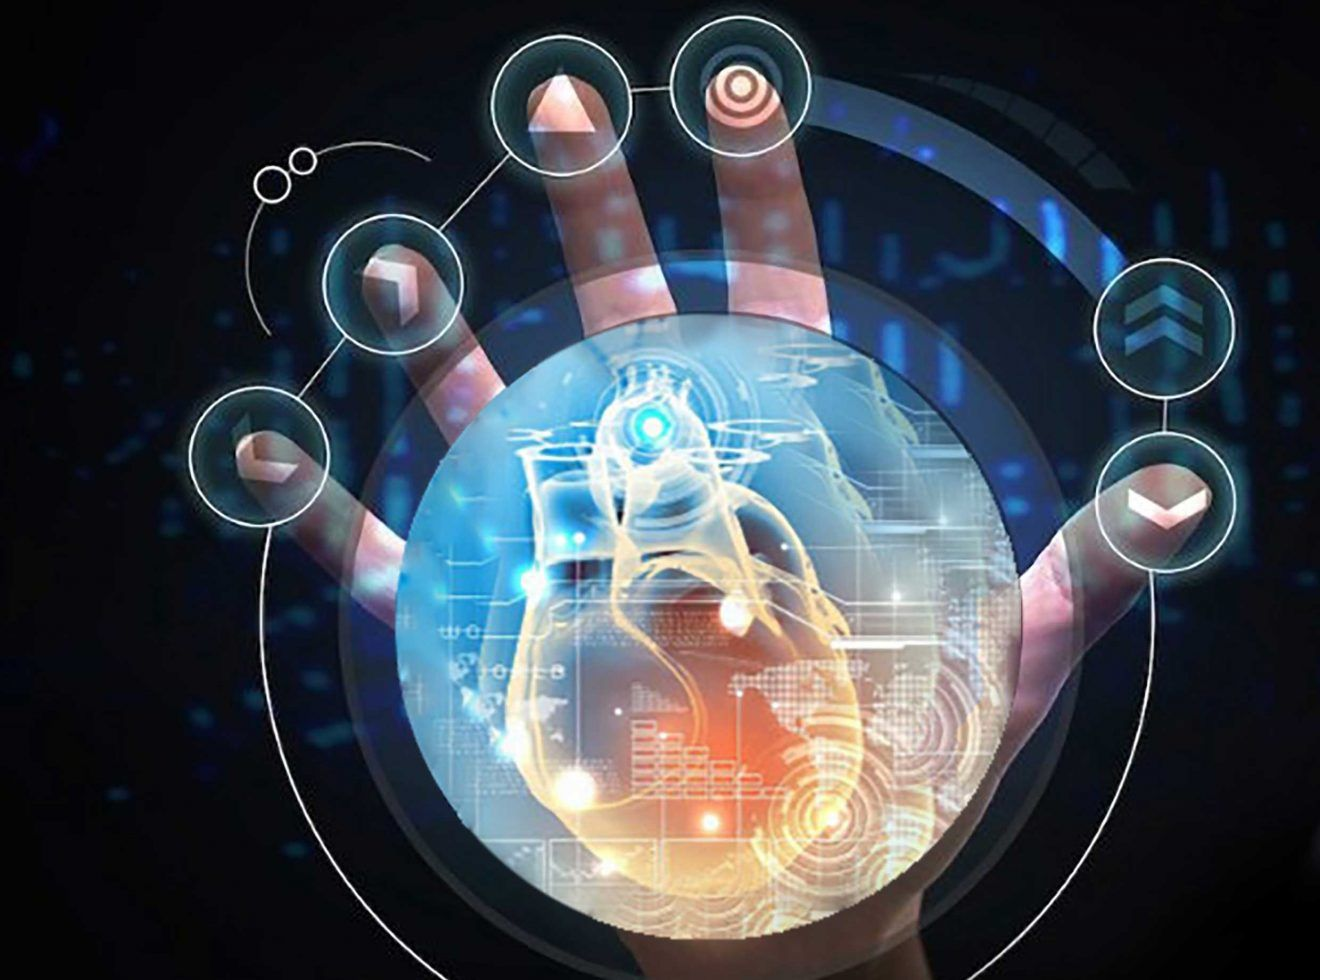 Artificial intelligence in healthcare market worth 276